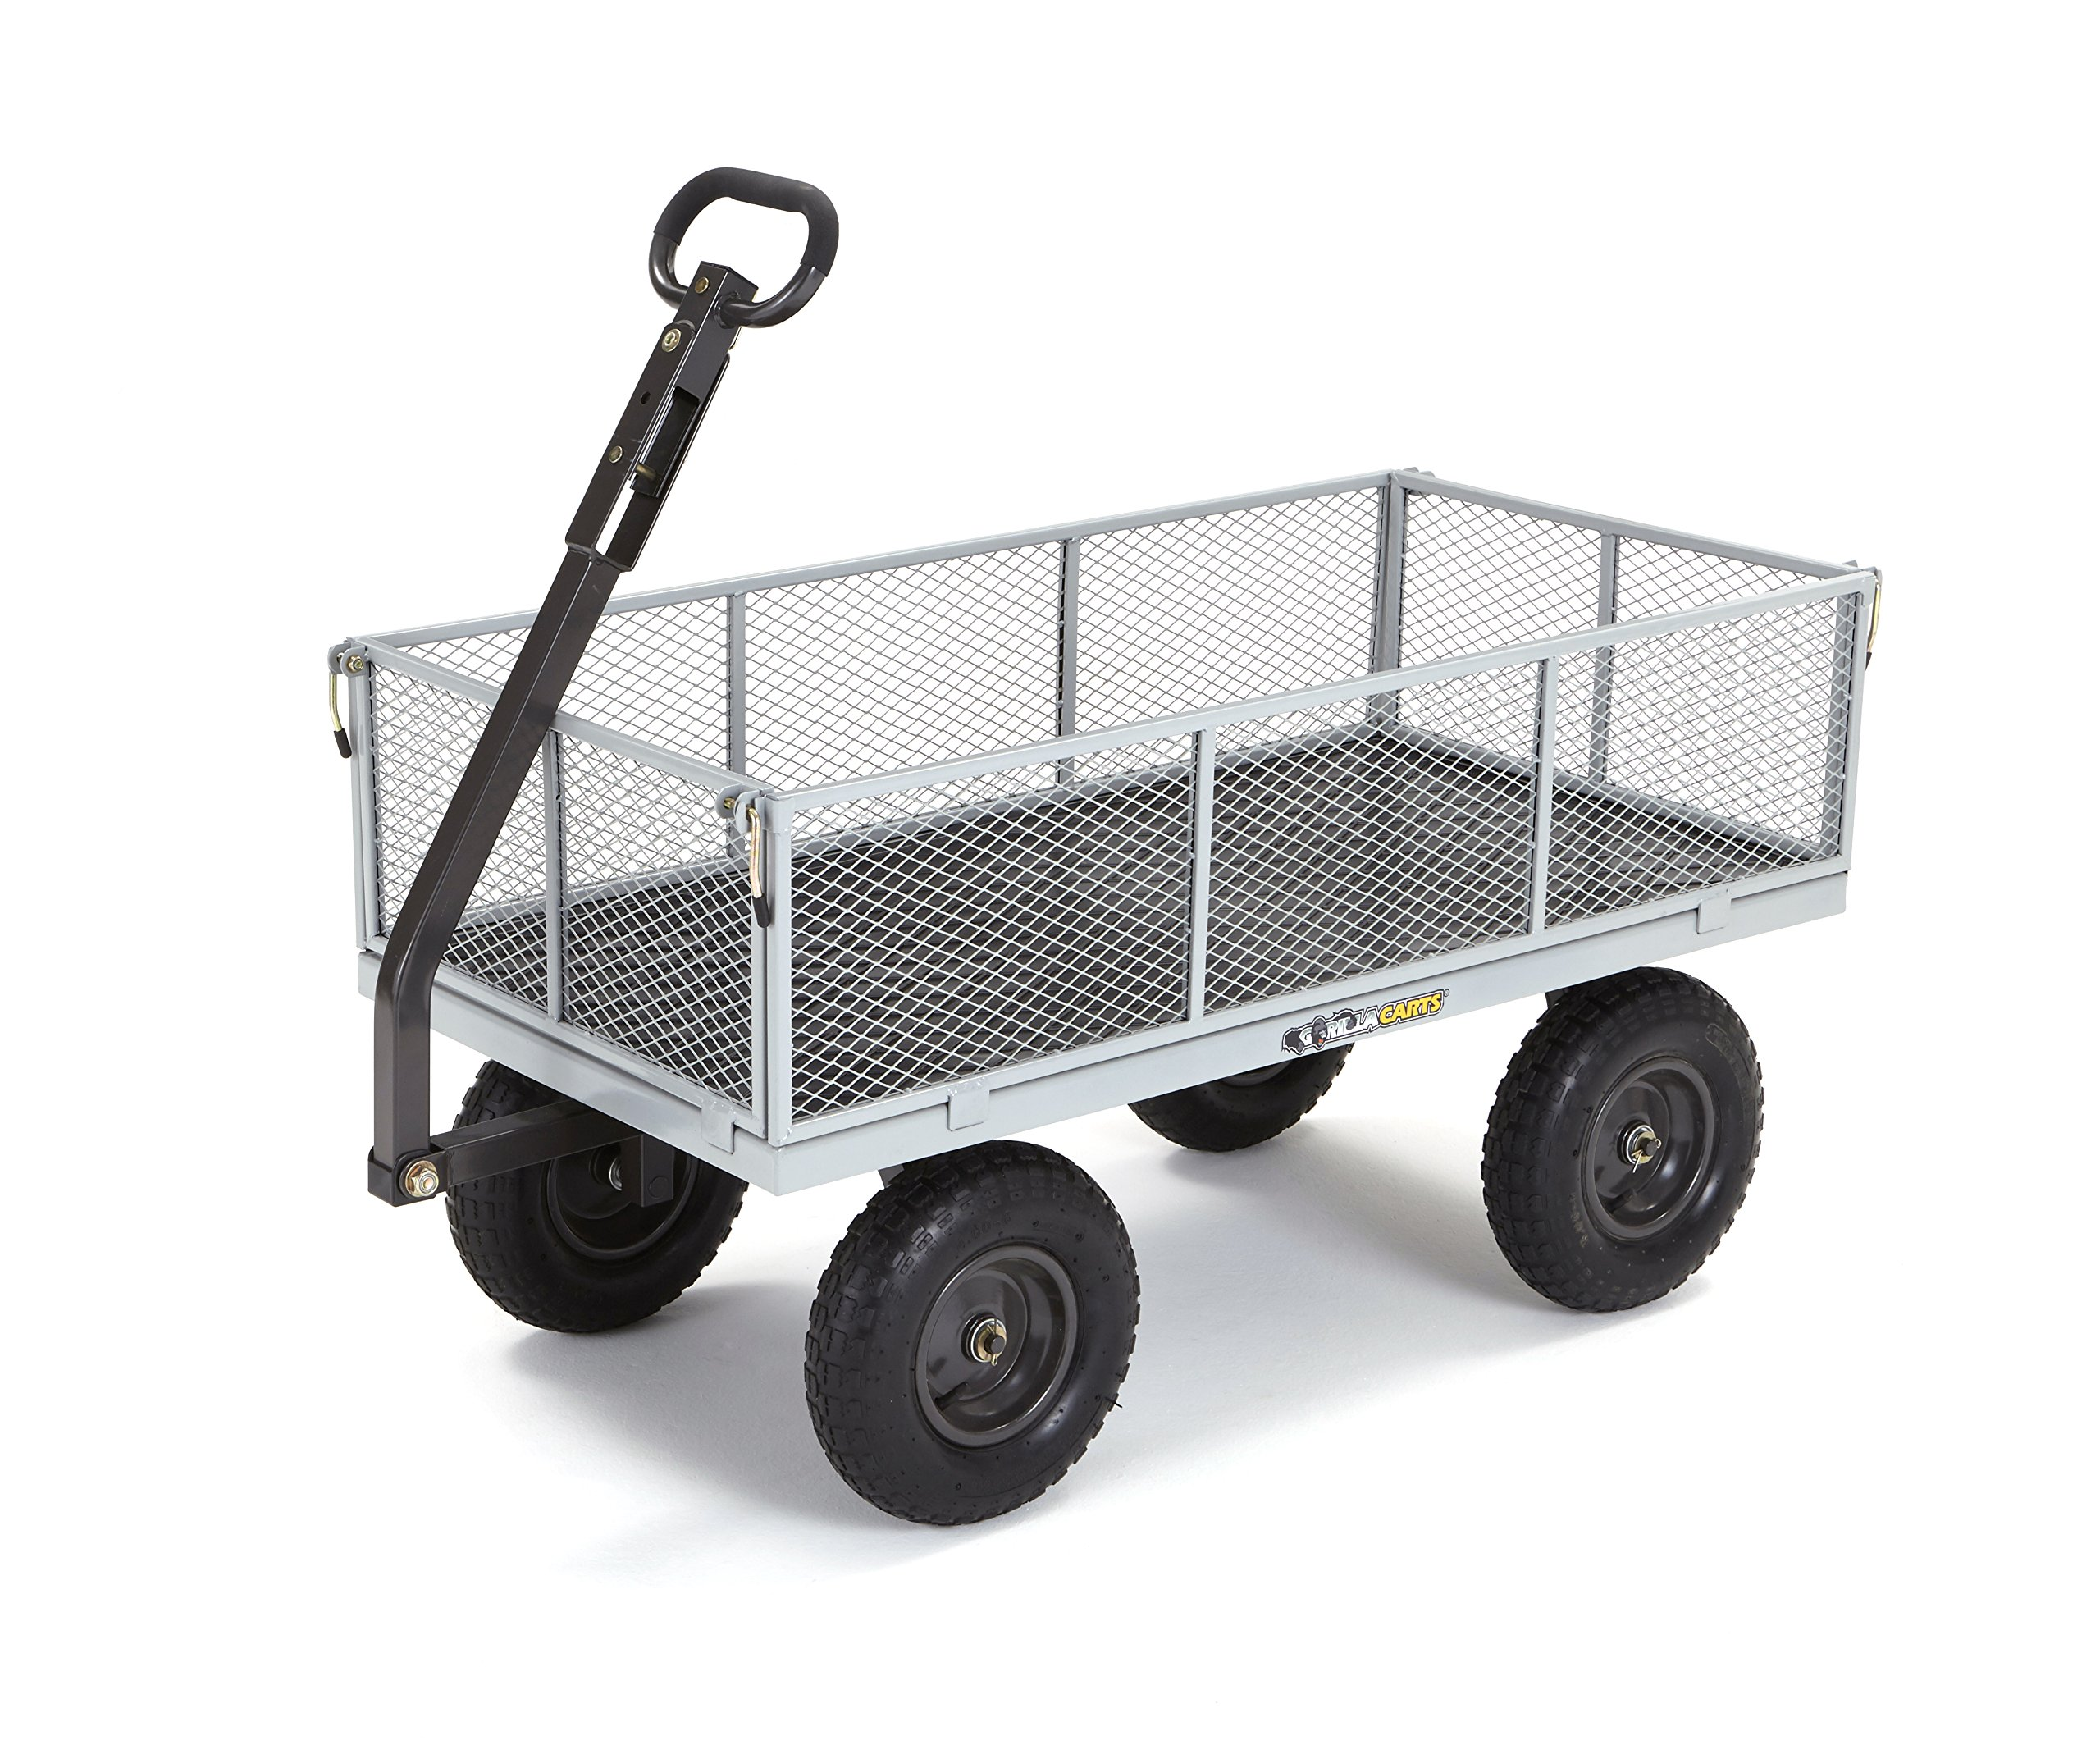 Gorilla Carts Heavy-Duty Steel Utility Cart with Removable Sides with a Capacity of 1000 lb, Gray by Gorilla Carts